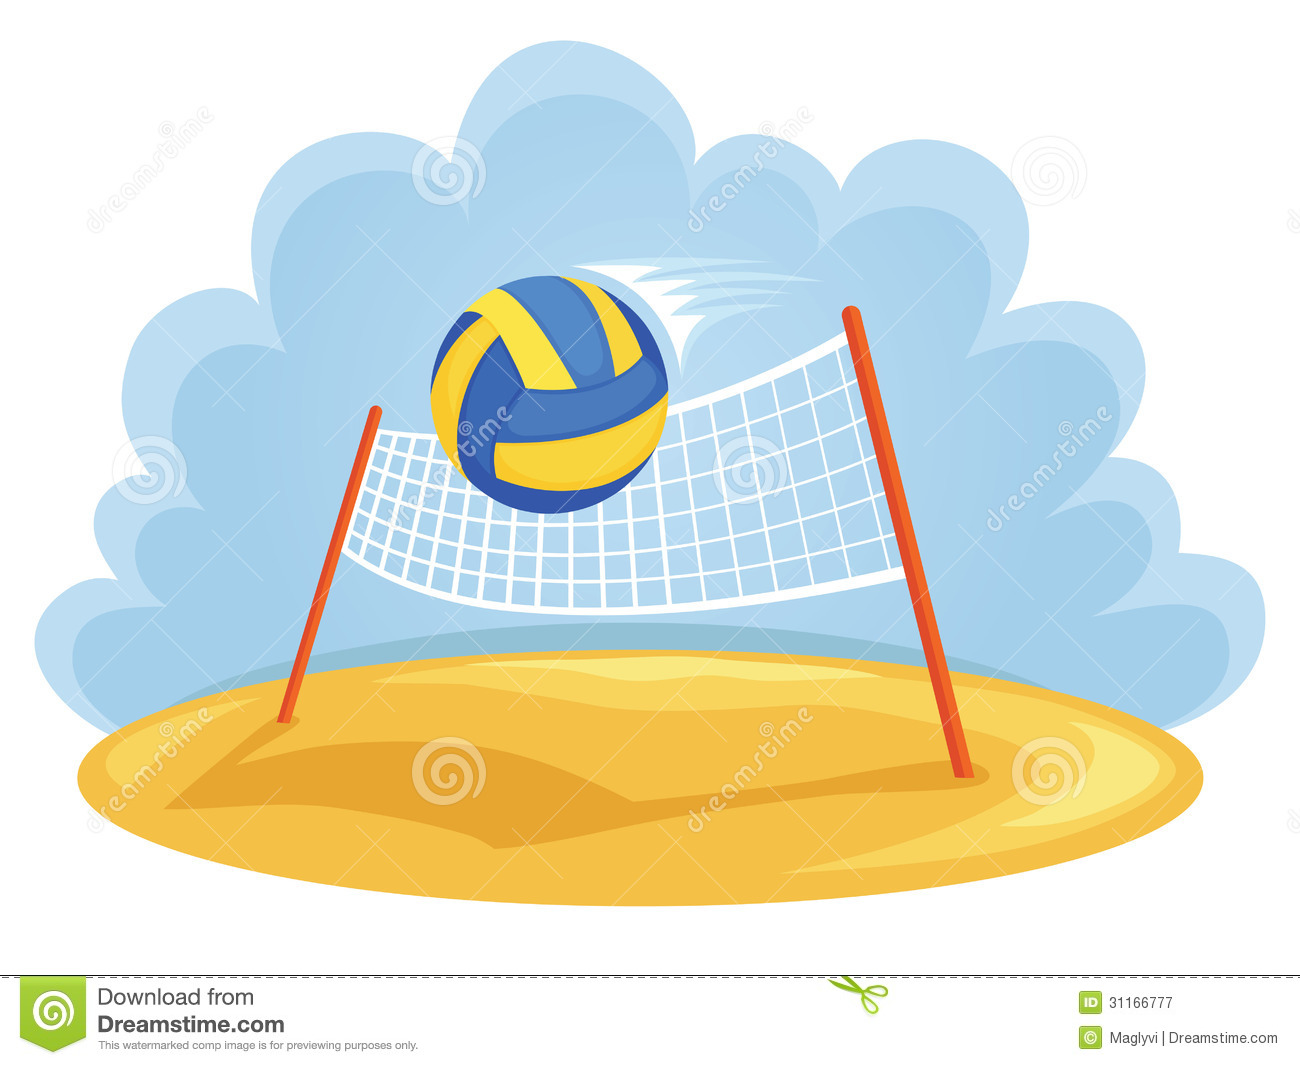 Abstract Design Of A Beach Volleyball Player Vector Image: Summer Sports Stock Vector. Illustration Of Symbol